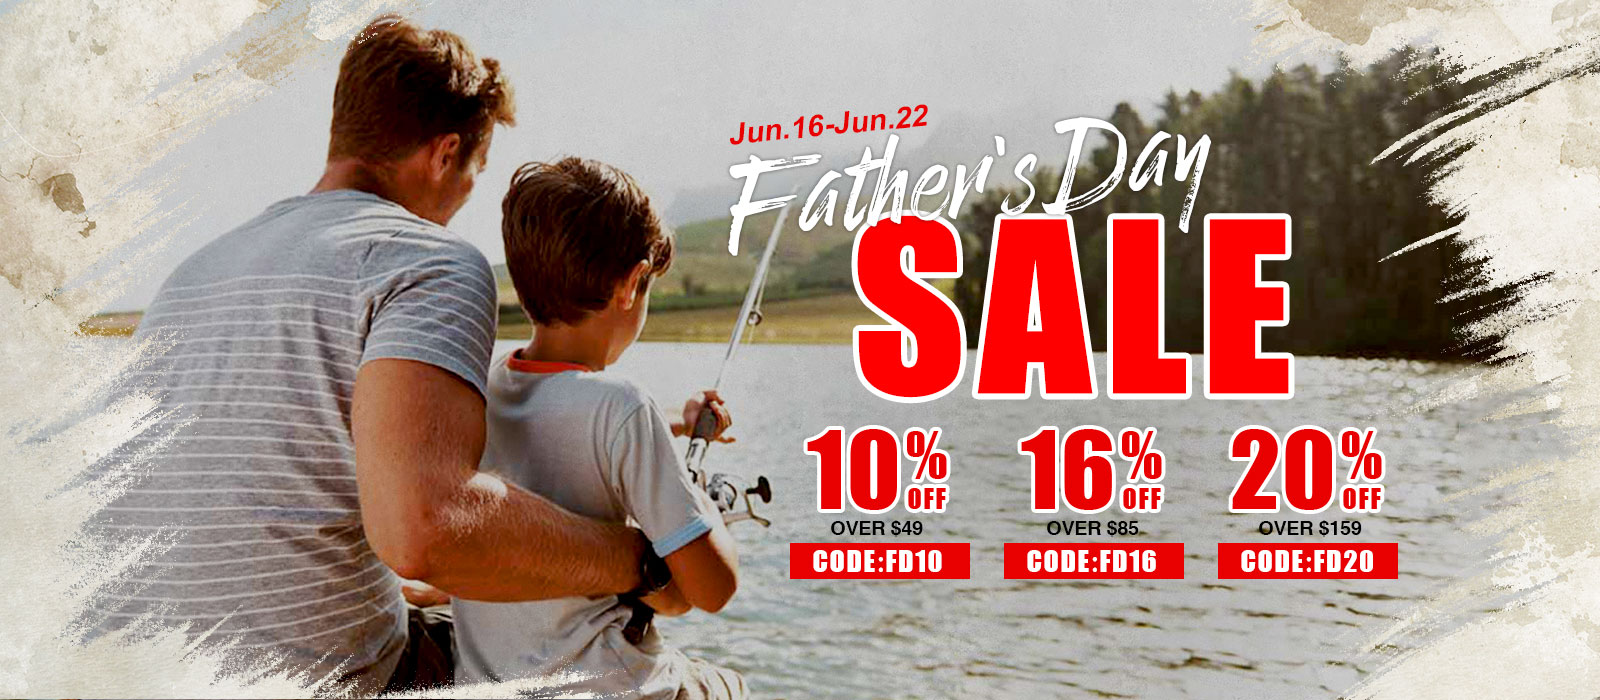 20% off over $159 on Piscifun Father's Day Deal